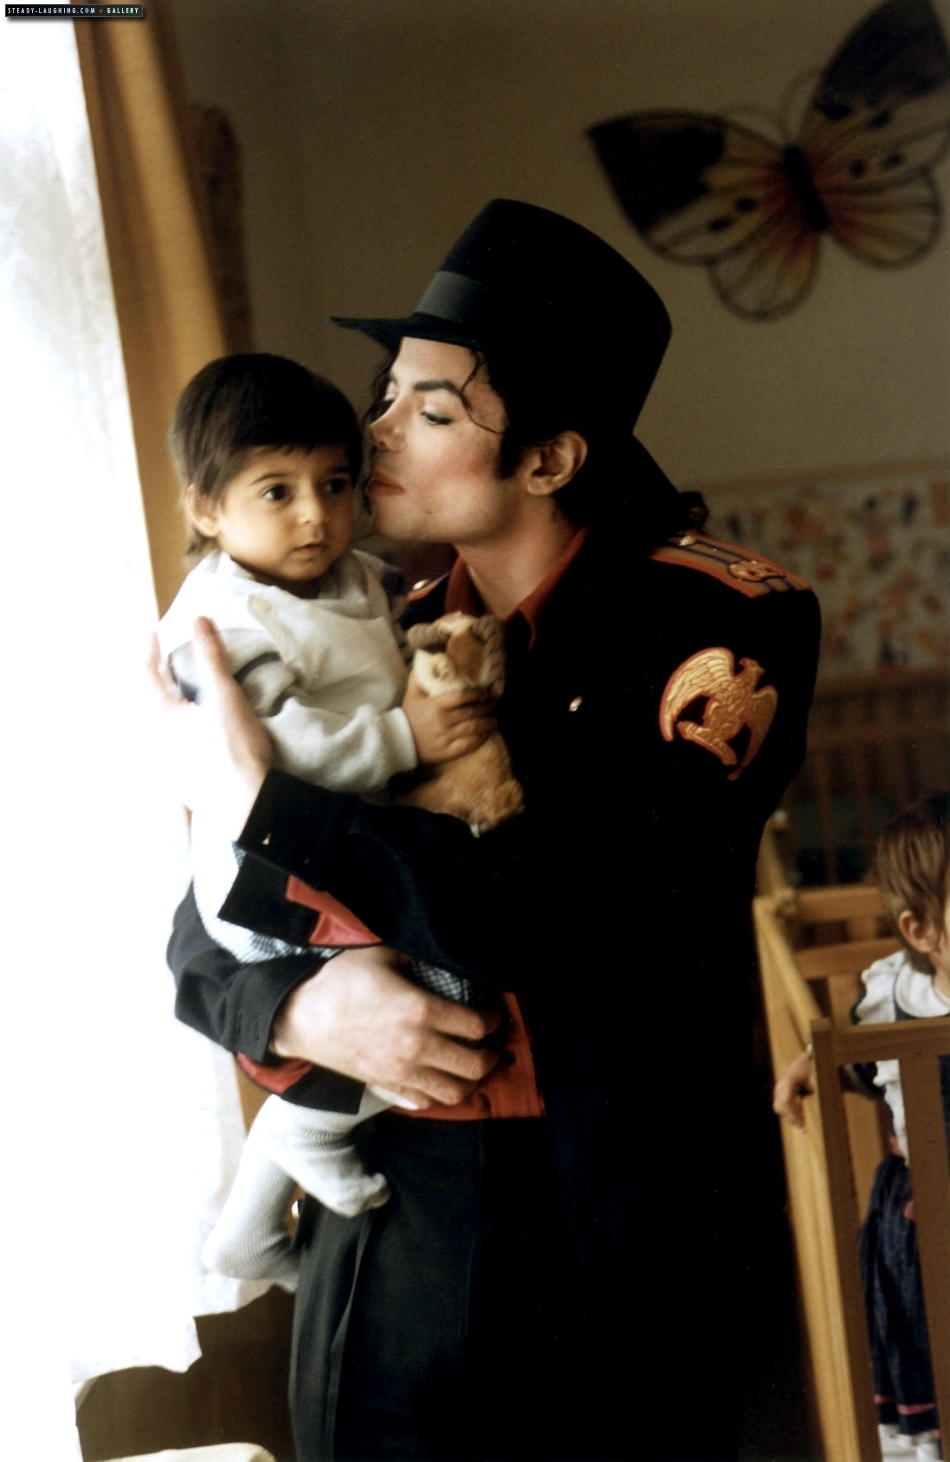 DIA DE LA TIERRA HOMENAJE PARA MIKE MJ-and-children-michael-jackson-10762079-950-1462